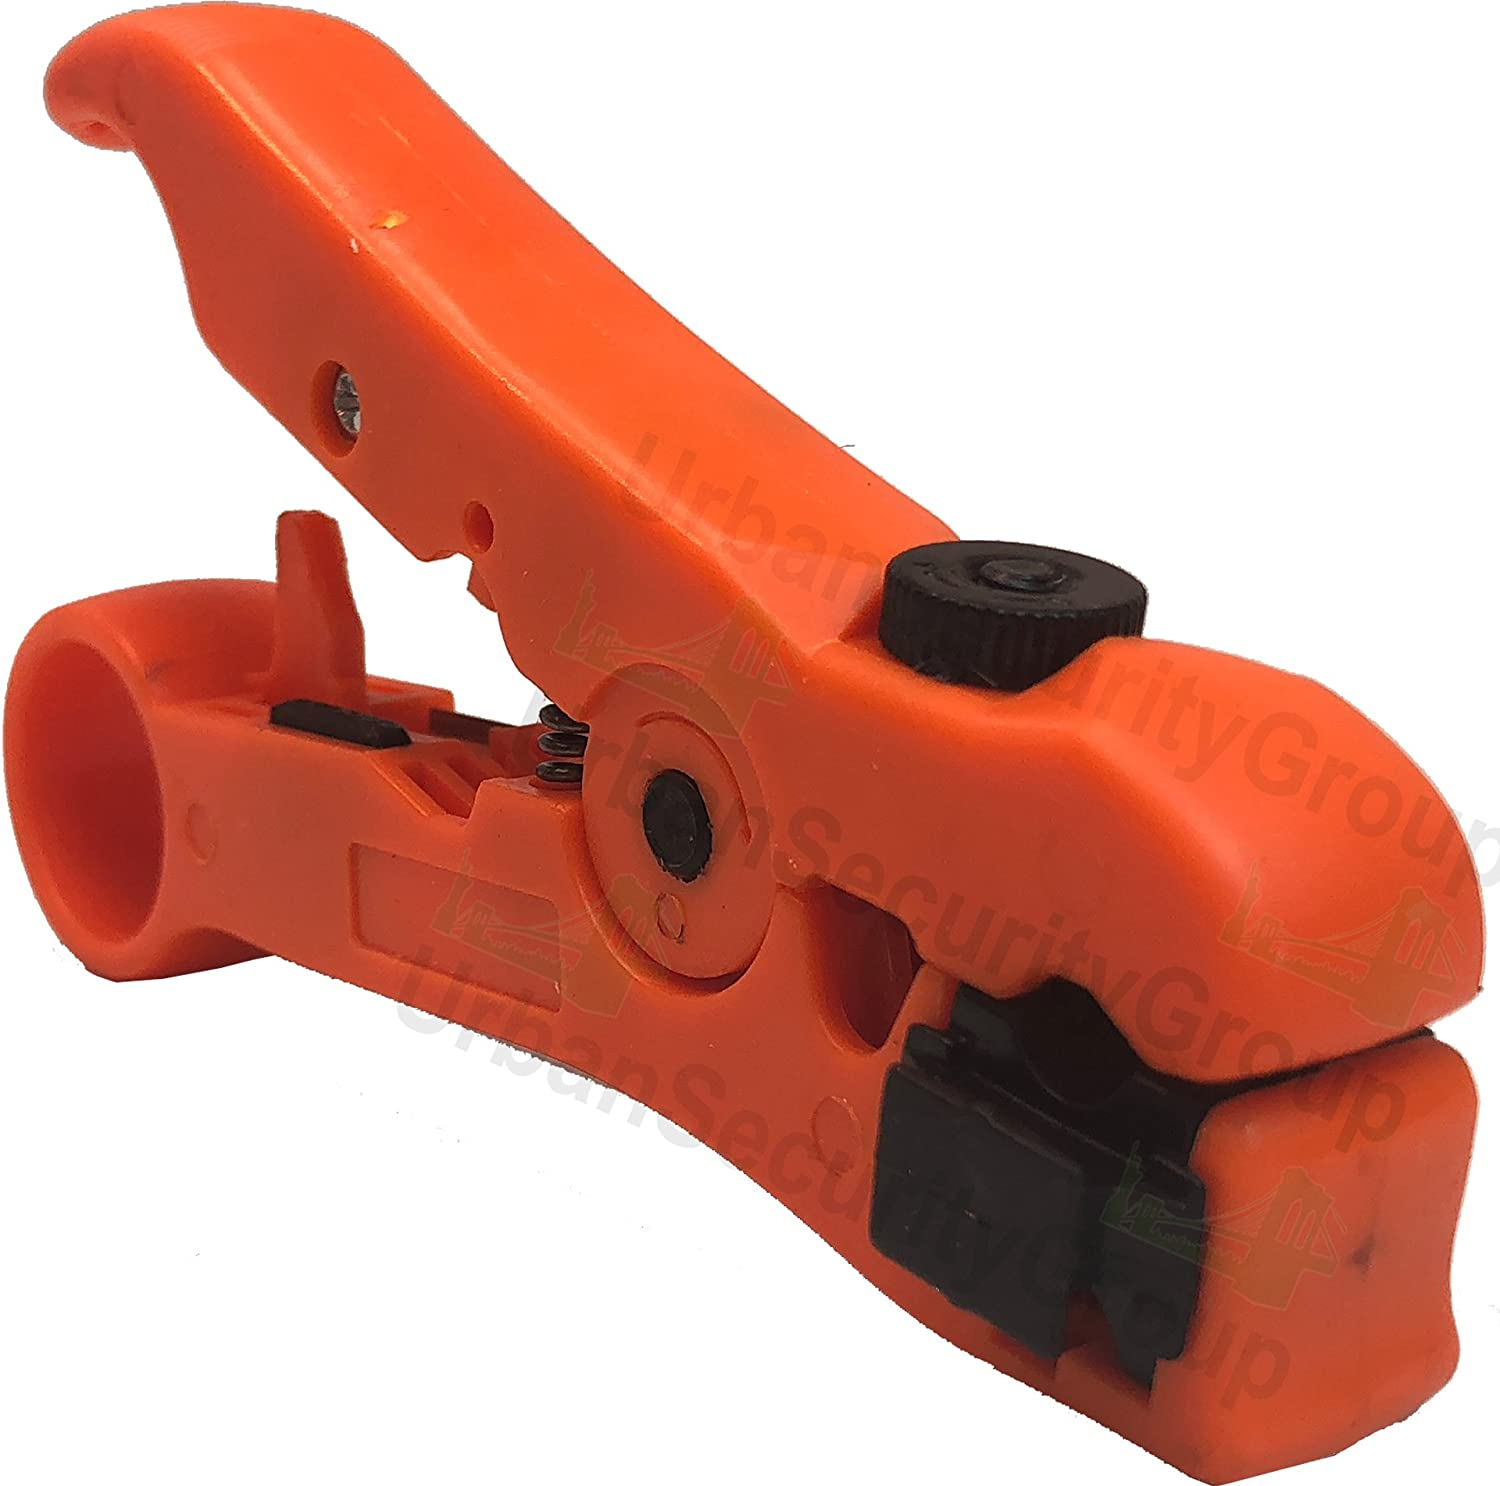 Plastic Construction : Premium Pro Grade Cat6 STP : Round /& Flat Cable : Comfortable Grip : High Grade Steel RG11 : Network Cat5e RG7 UTP USG Orange CCTV Cable Stripper : Coaxial RG59 RG6